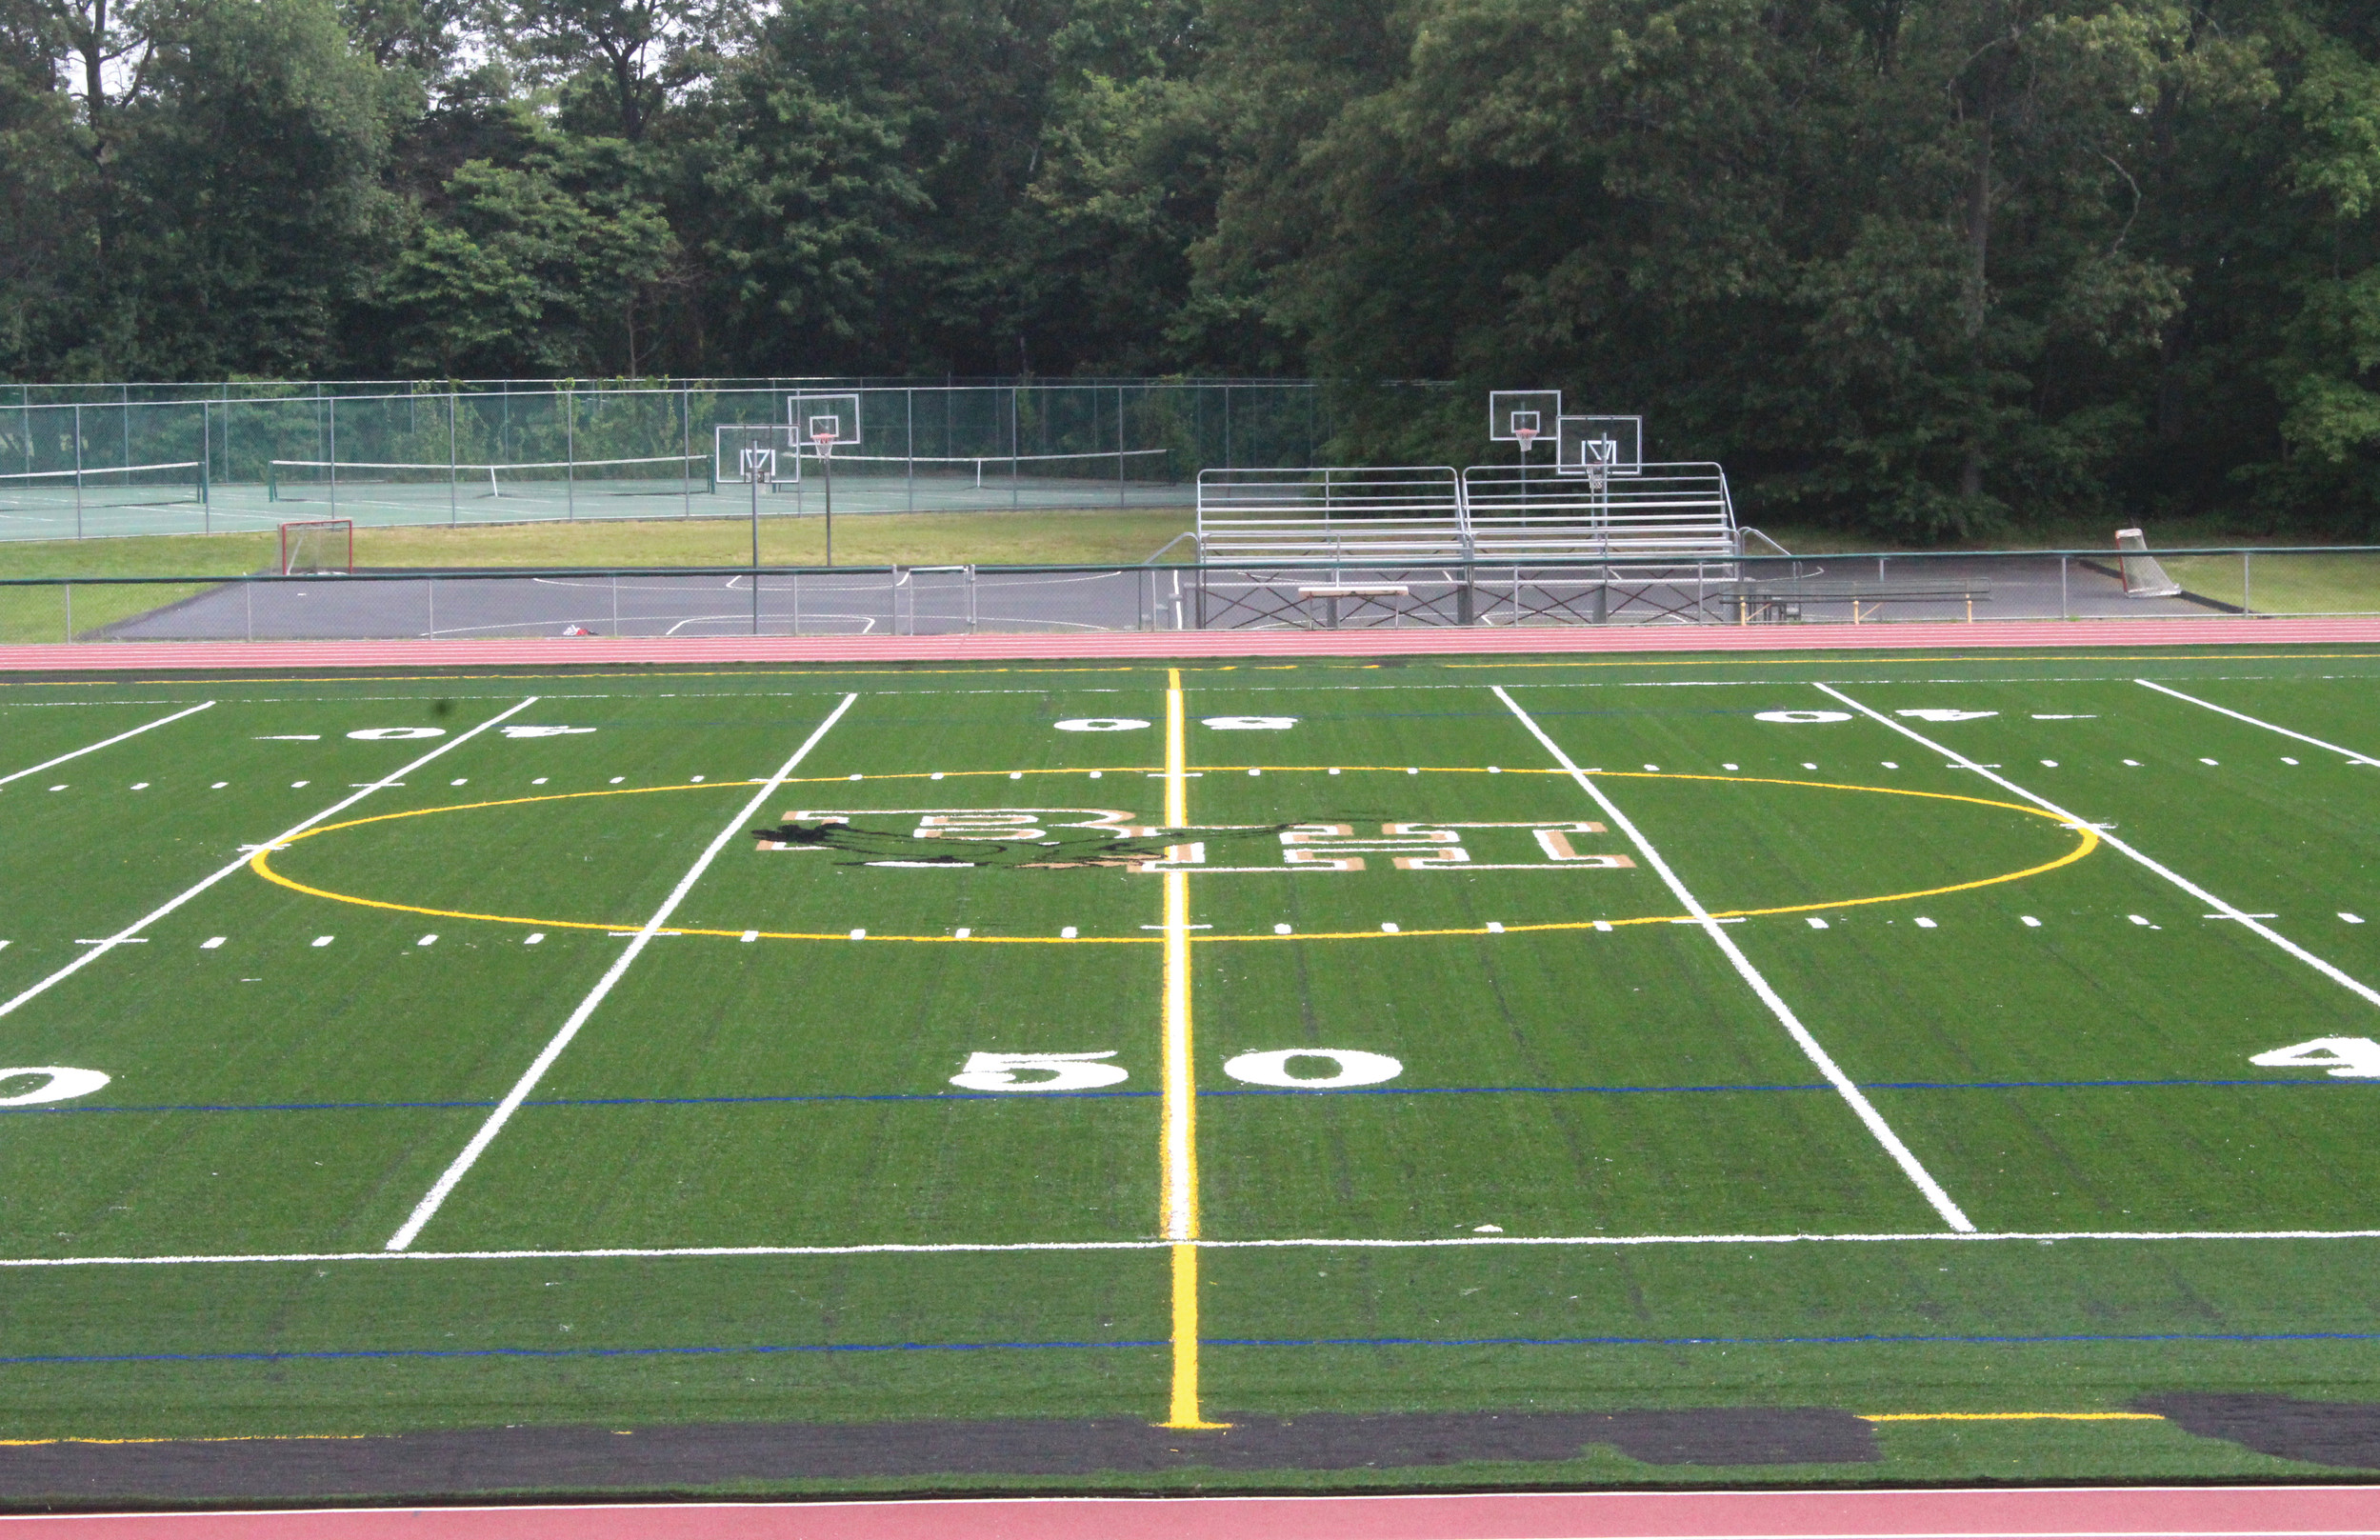 NEW TURF: Hendricken's new turf field was installed in recent weeks. A brand new scoreboard will also be installed within the next month.